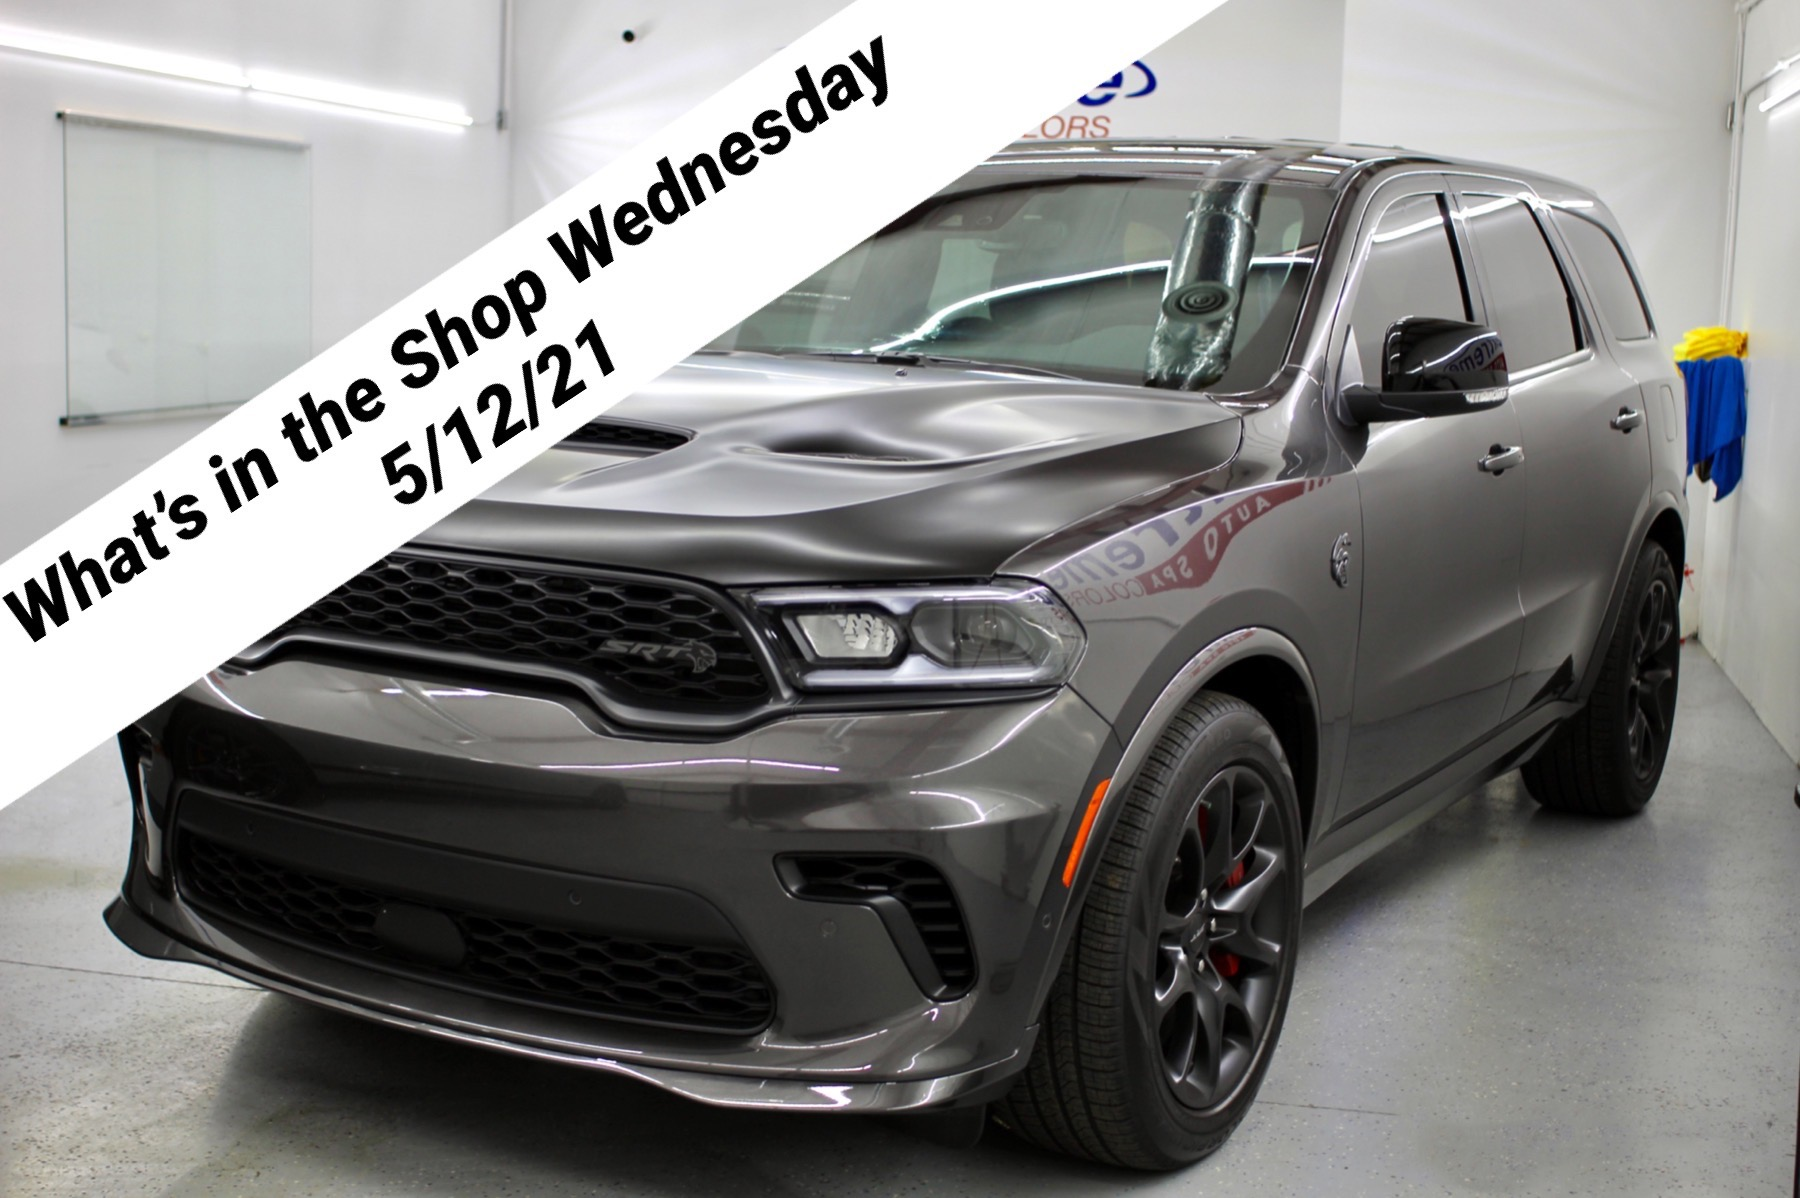 What's in the Shop Wednesday 5/12/21